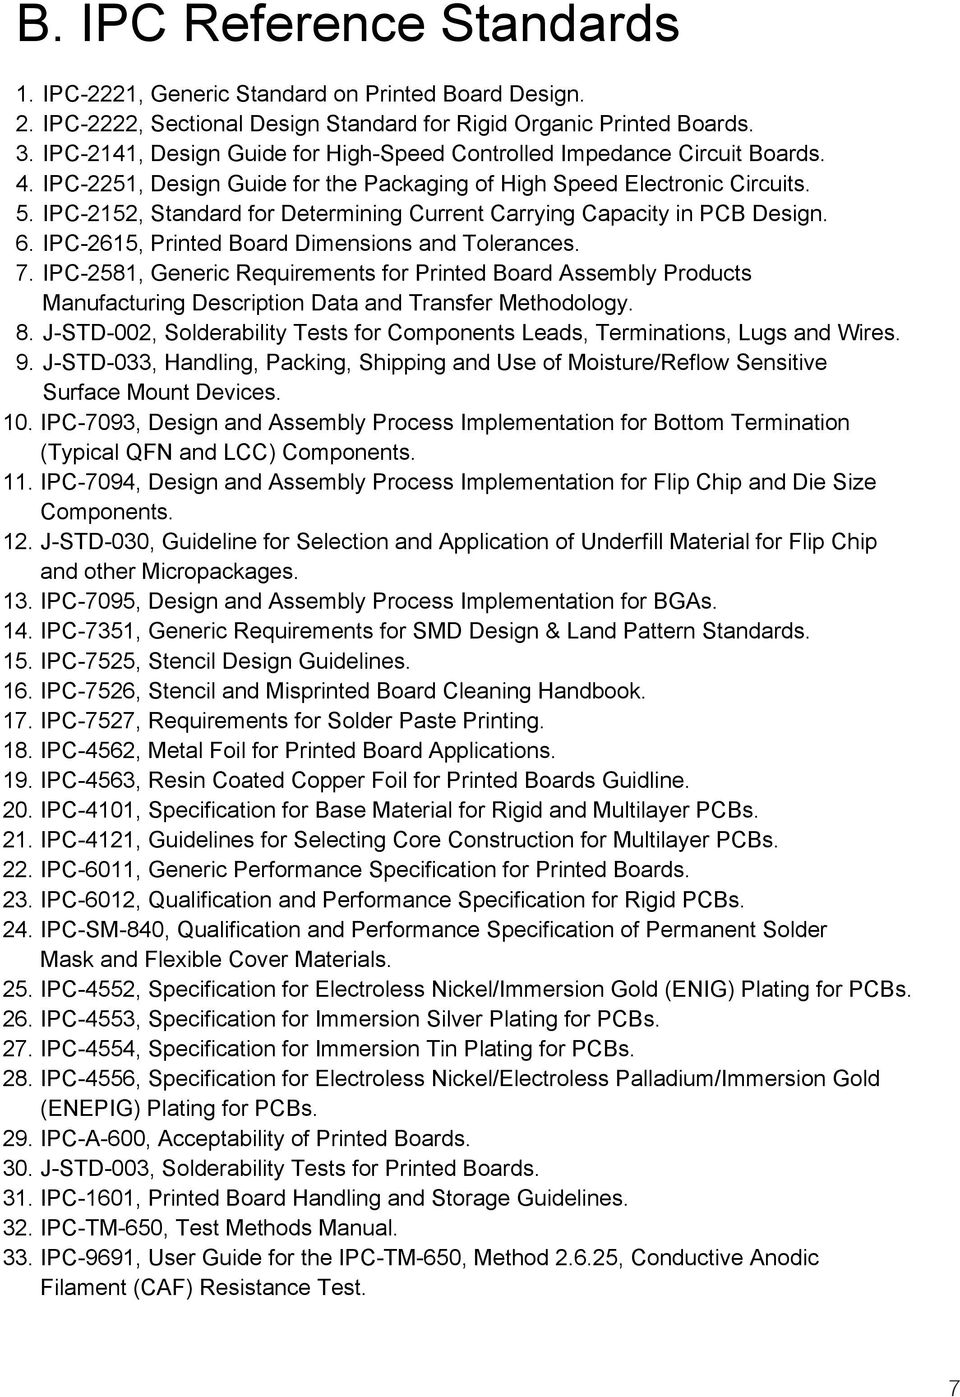 Ipc Checklist For Producing Rigid Pcbas Pdf Printed Circuit Board Assembly On Global Sources 2152 Standard Determining Current Carrying Capacity In Pcb Design 6